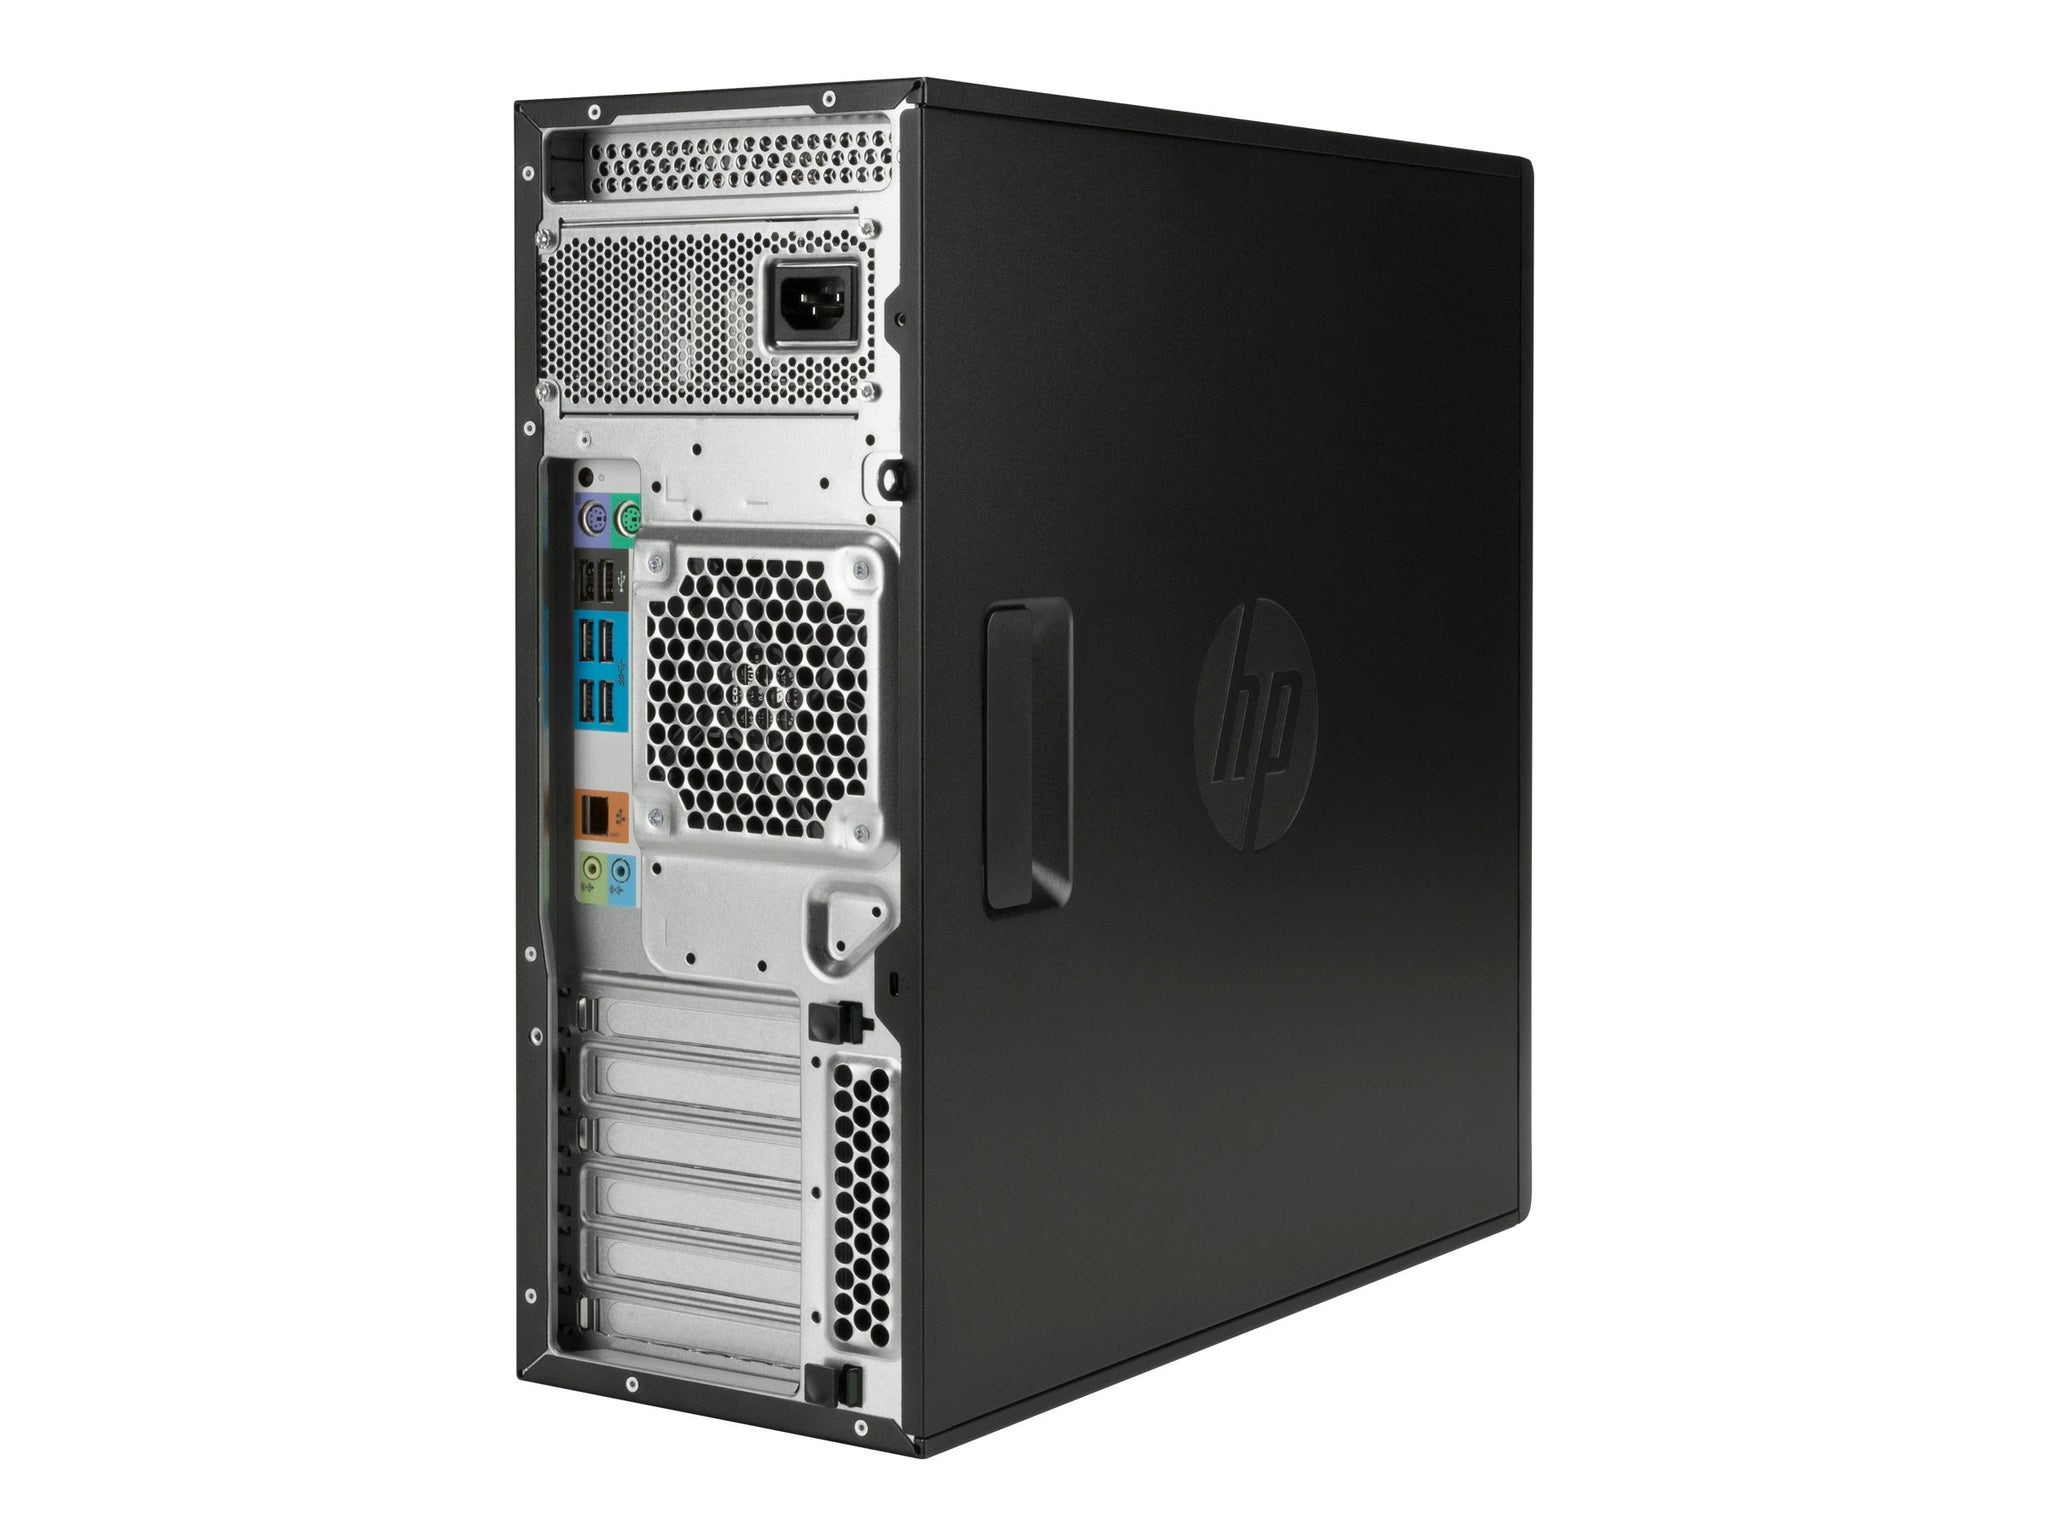 HP Z440 WORKSTATION Tower PC Ex Lease Intel CPU E5-1650 V4 3.60 GHz 32GB RAM 512GB SSD + 1TB HDD QUADRO M4000 8GB Card DVD-R WINDOWS 10 Pro